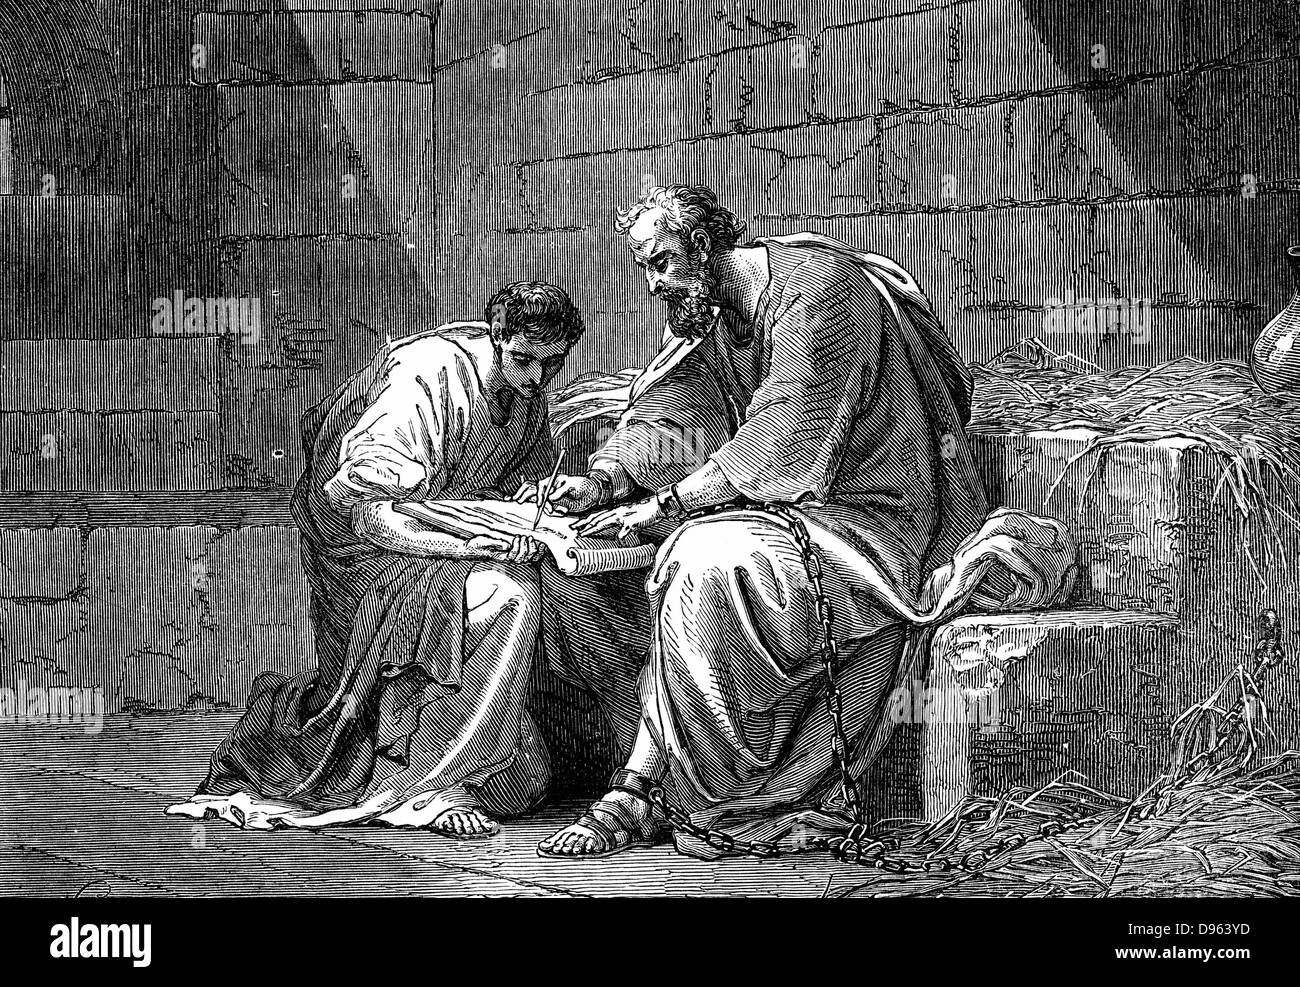 St Paul the Apostle in prison, writing his epistle to the Ephesians. 1st century AD. 'Bible' Ephesians 3.1. - Stock Image